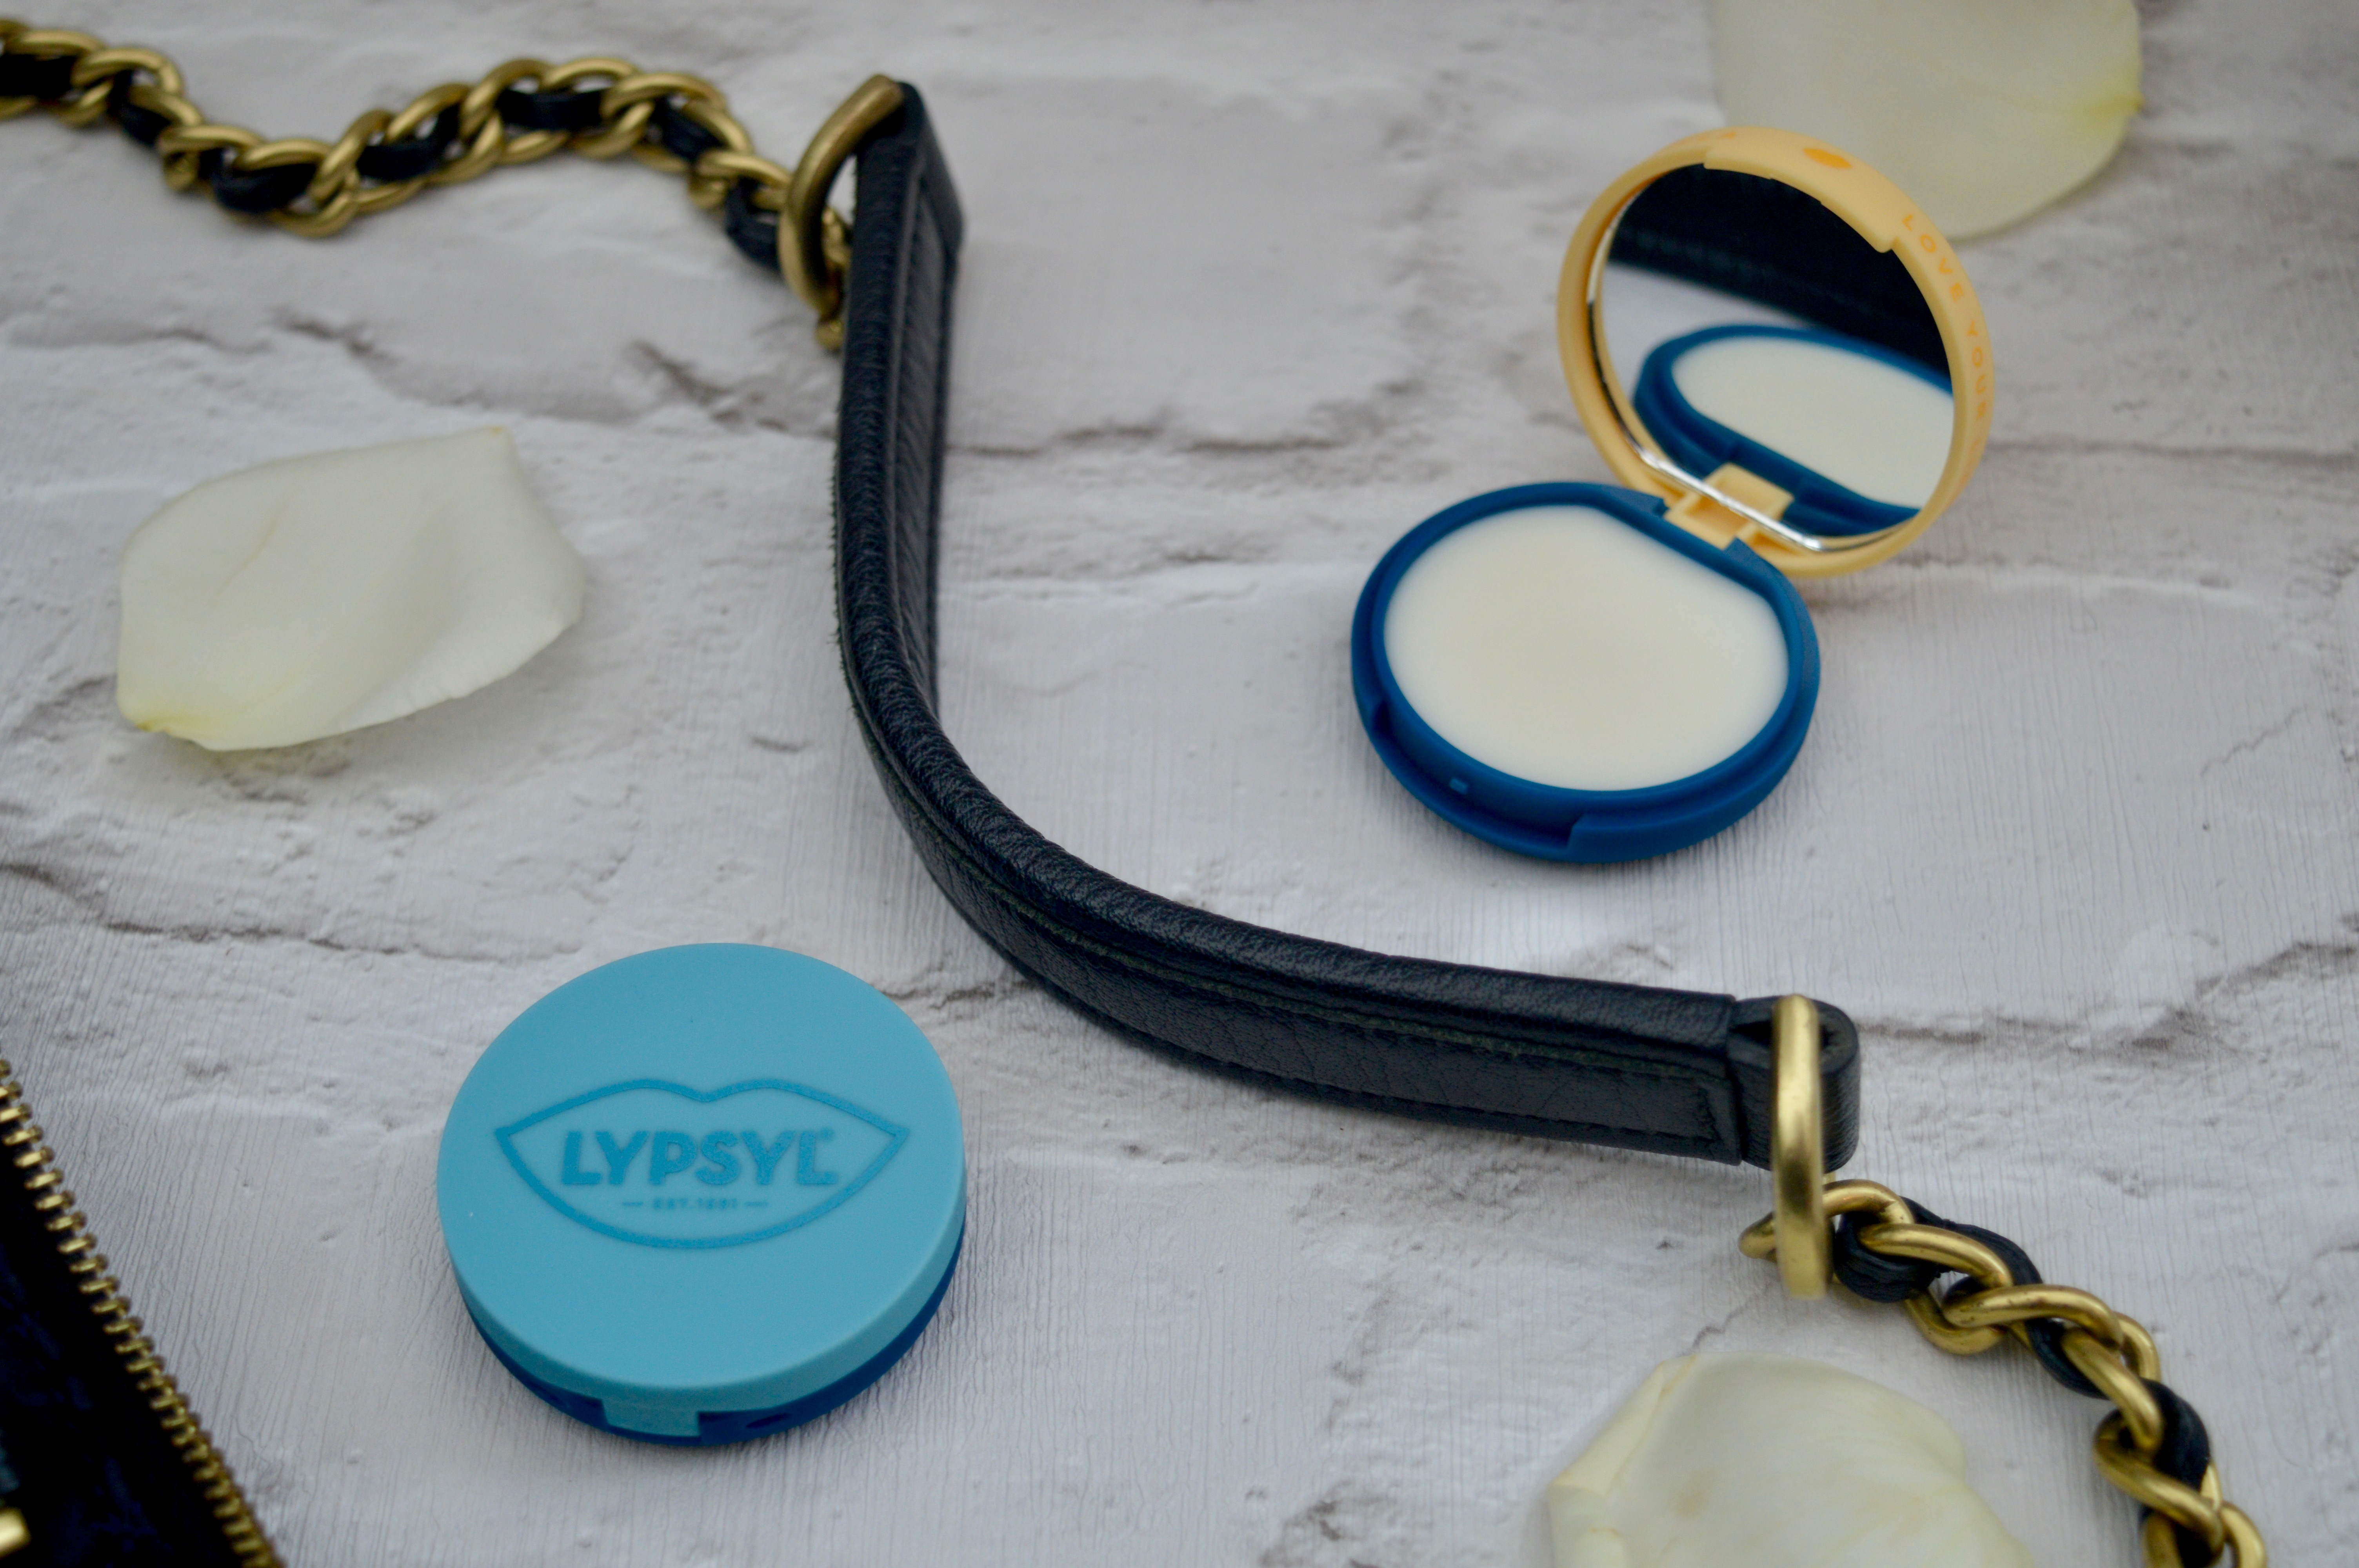 Lypsyl NEW Compact Mirrors in Original & Vanilla | Beauty Blog | Elle Blonde Luxury Lifestyle Destination Blog